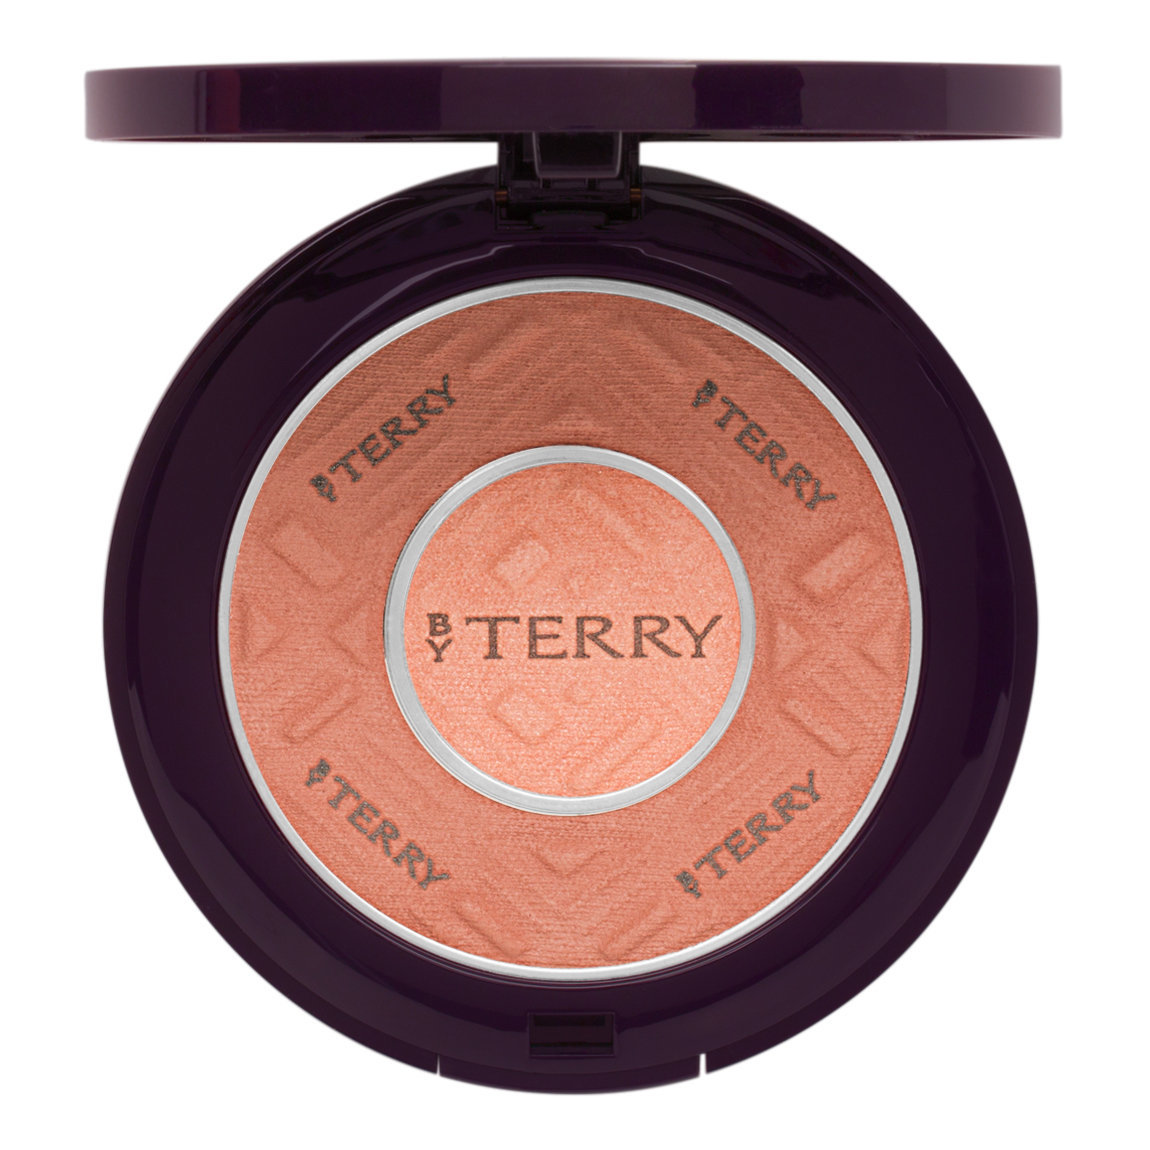 BY TERRY Compact-Expert Dual Powder 5 Amber Light product swatch.